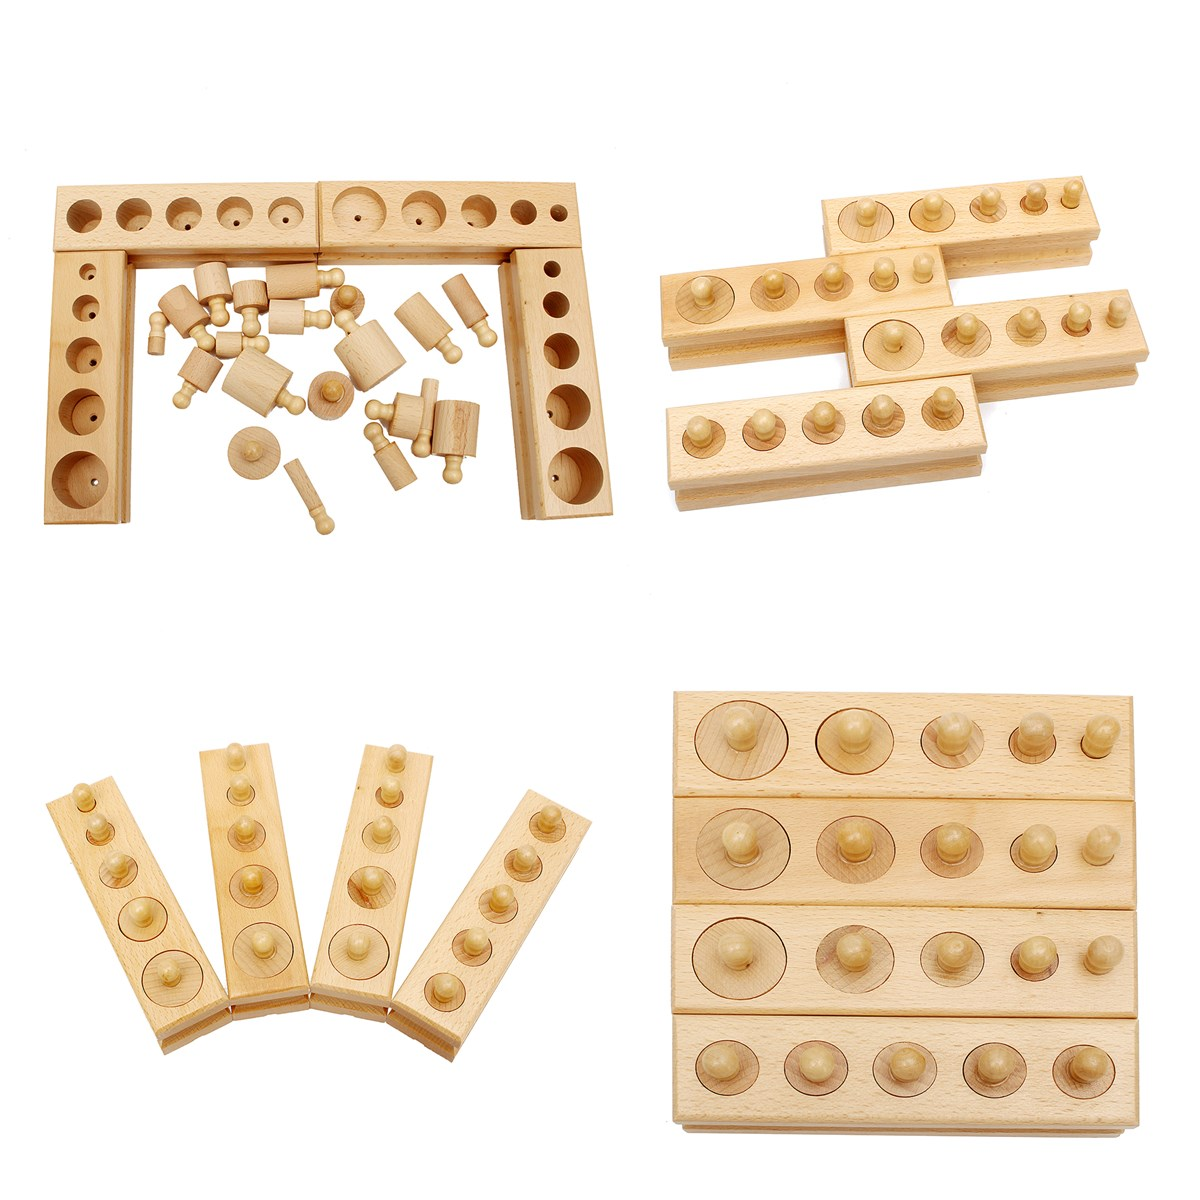 Knobbed Cylinder Blocks Family Set Wooden Montessori Educational Toy Gift For Children tcb remote control aircraft model aircraft lithium battery lion 11 1v 3500mah 25c 3s1p model aircraft battery